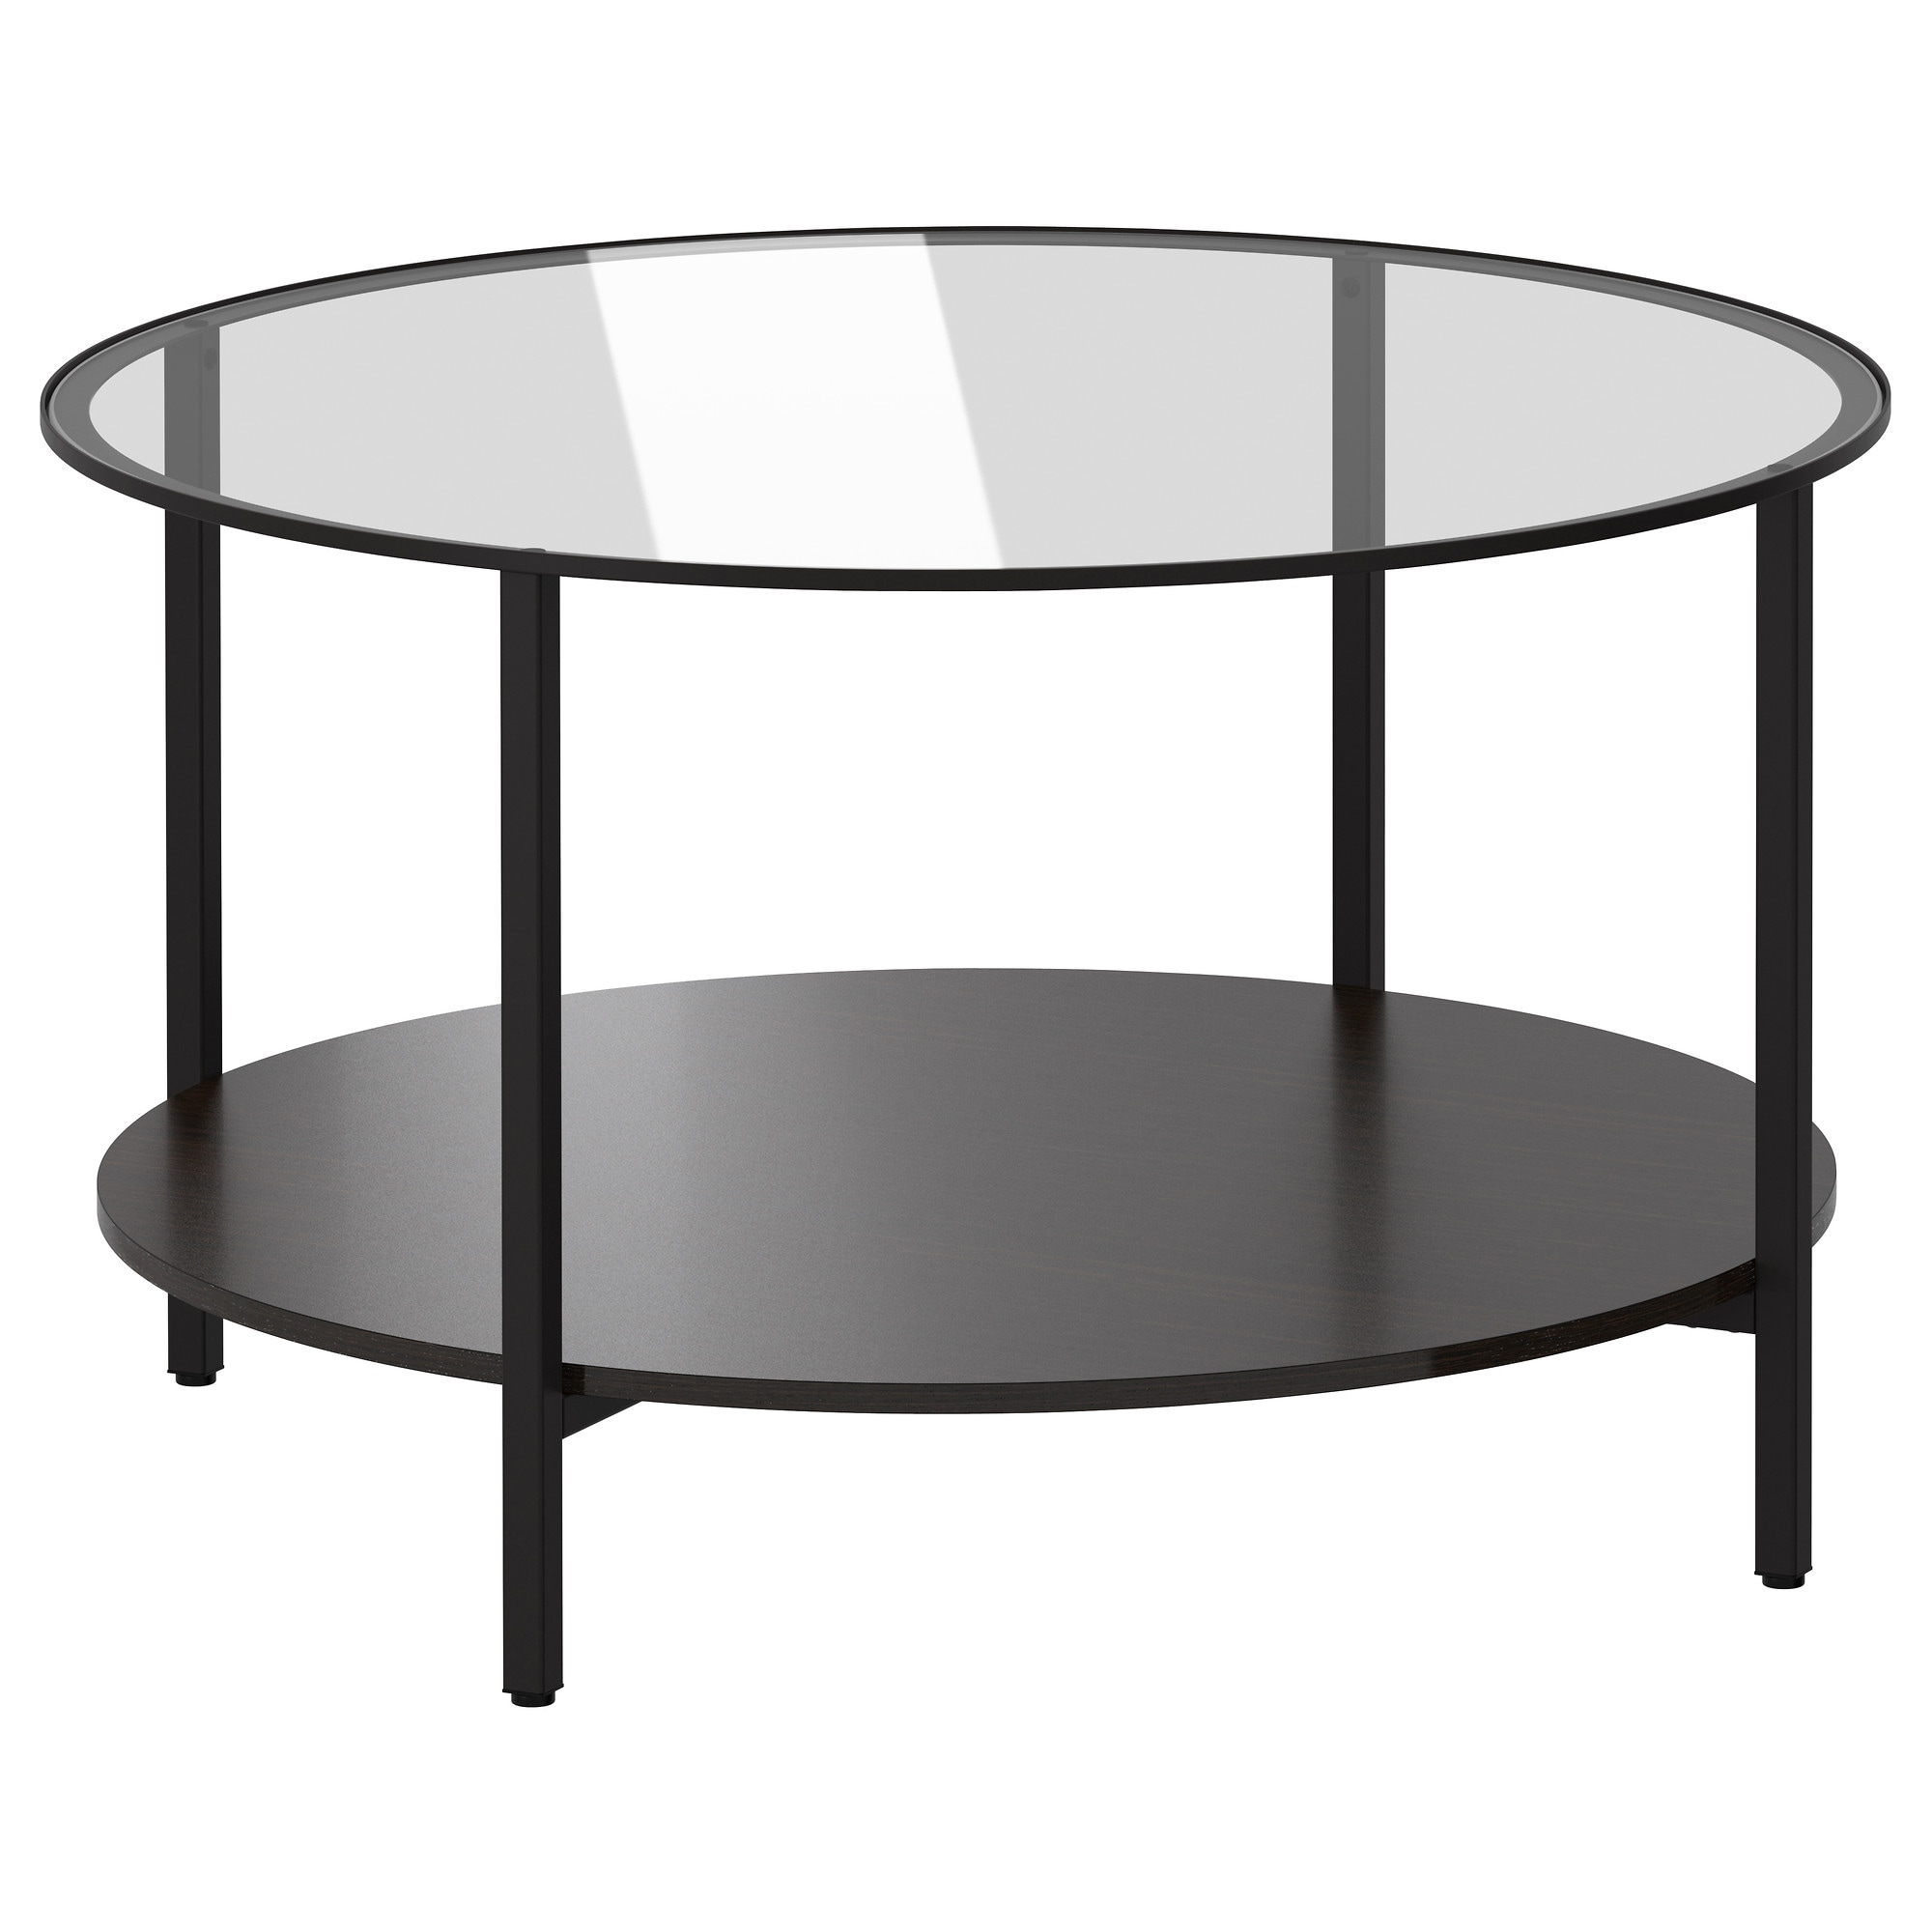 VITTSJ– Coffee table black brown glass IKEA